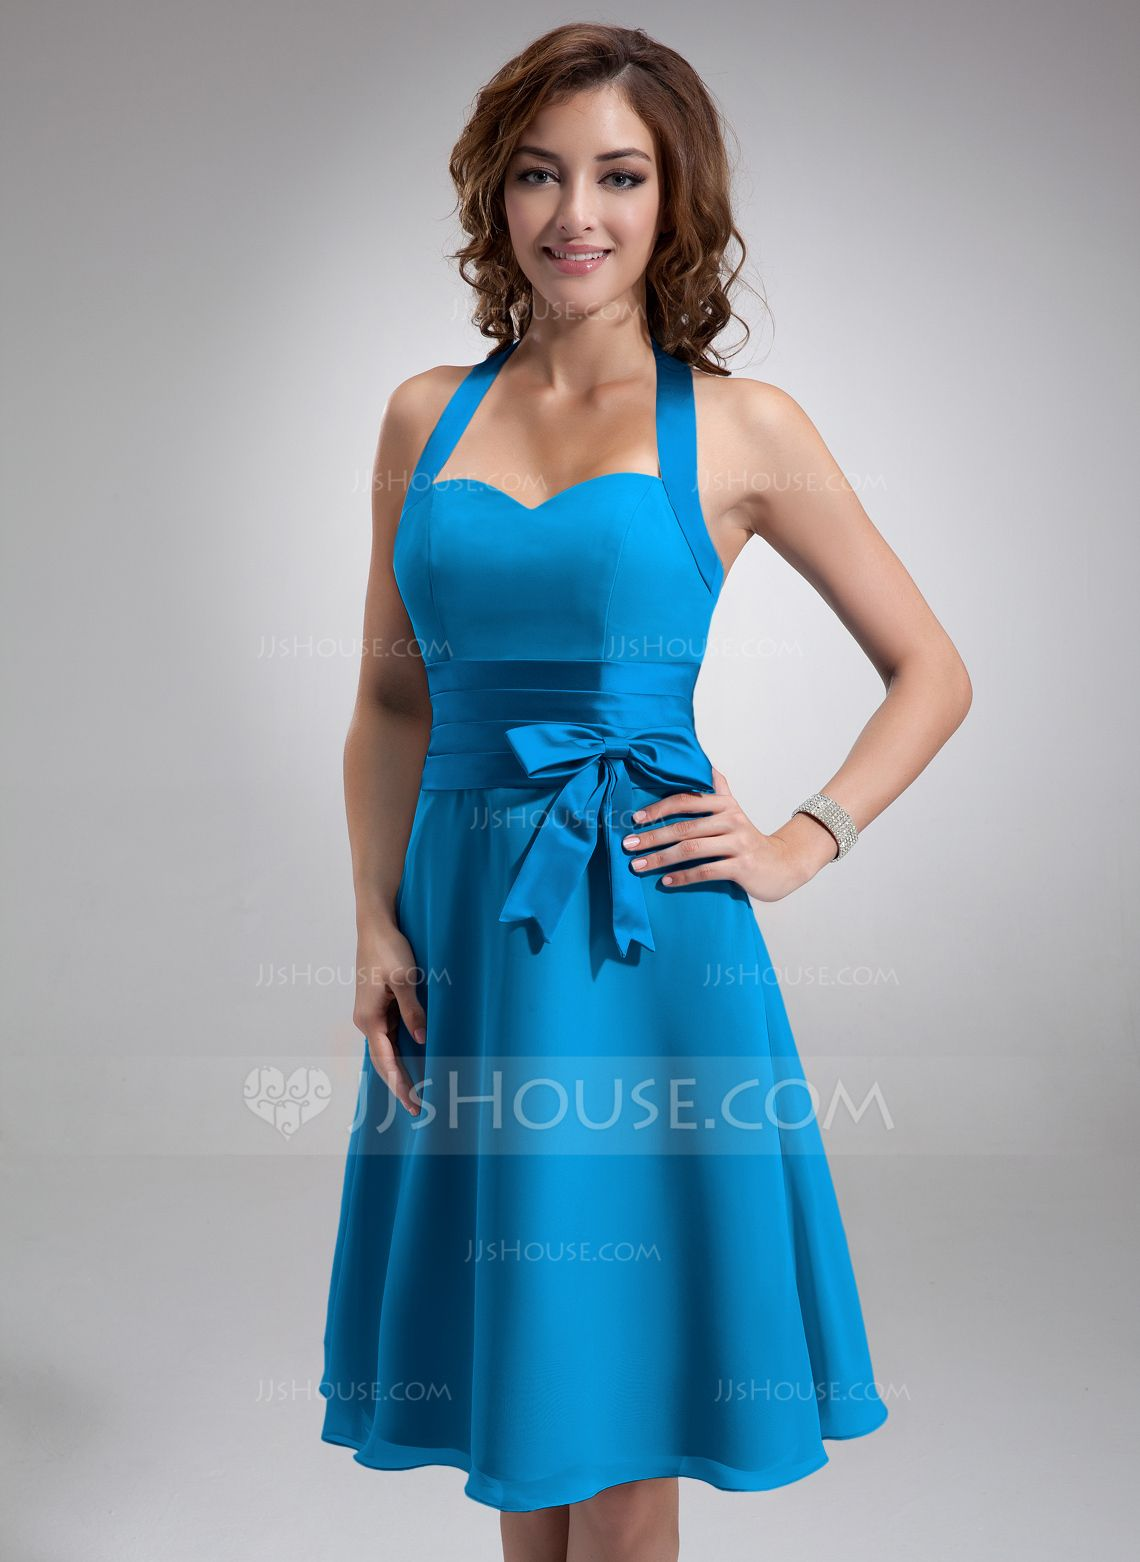 Alineprincess halter kneelength chiffon satin bridesmaid dress